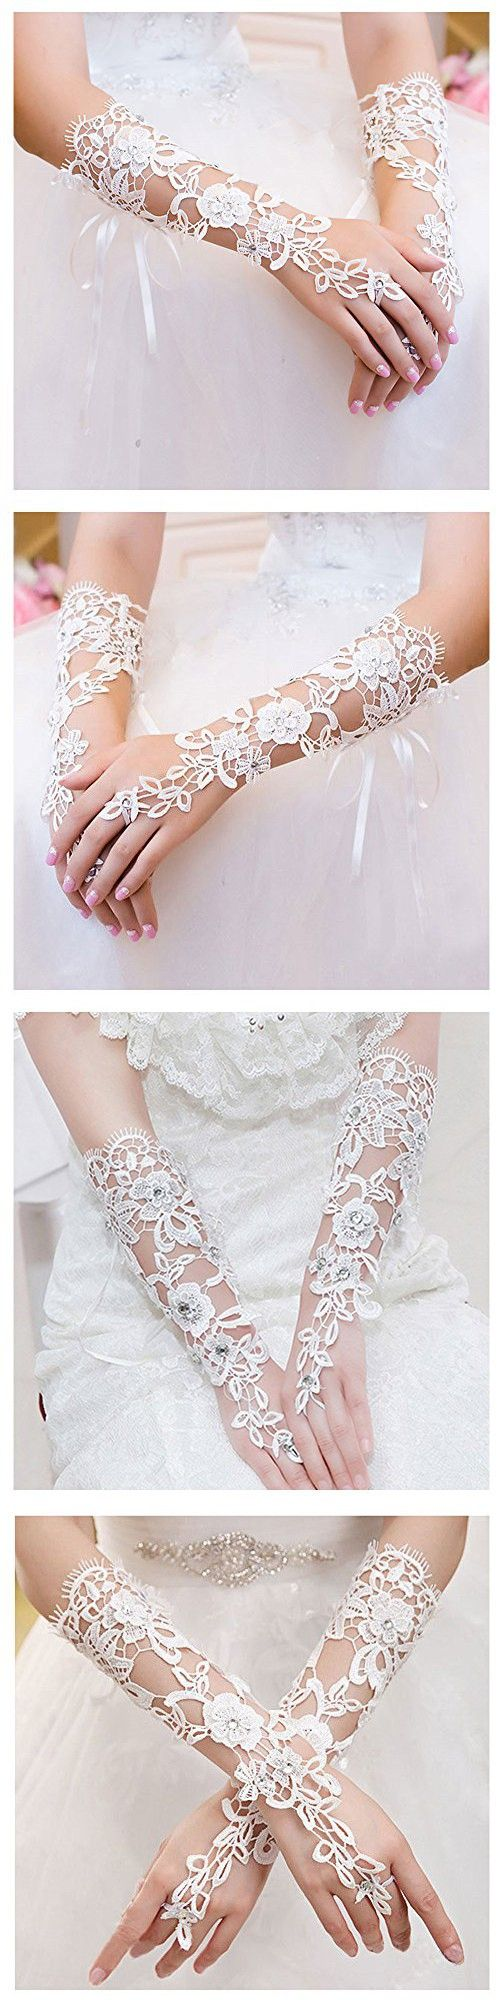 VITORIA'S GIFT The Bride Marriage Dress Wedding Sequin Lace Gloves Wedding Gloves (Long White 1)